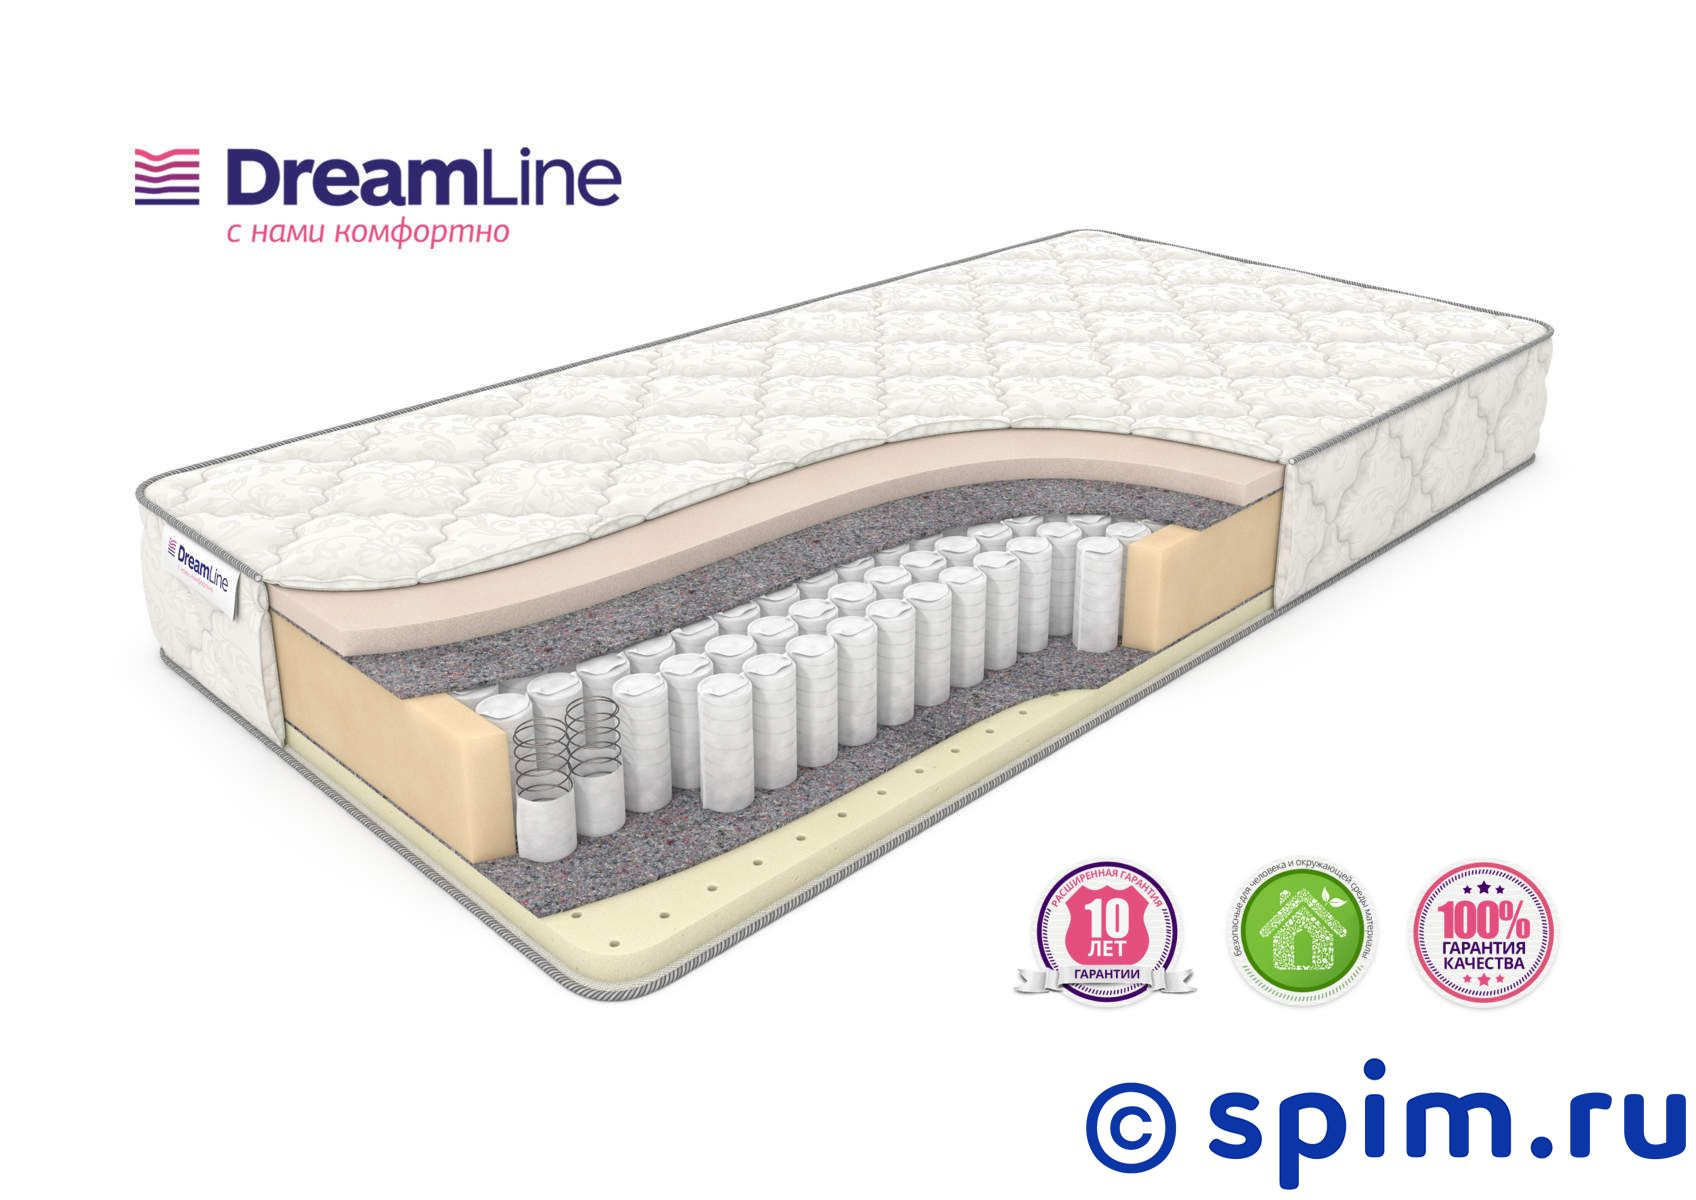 Матрас DreamLine Memory Sleep Tfk 150х190 см